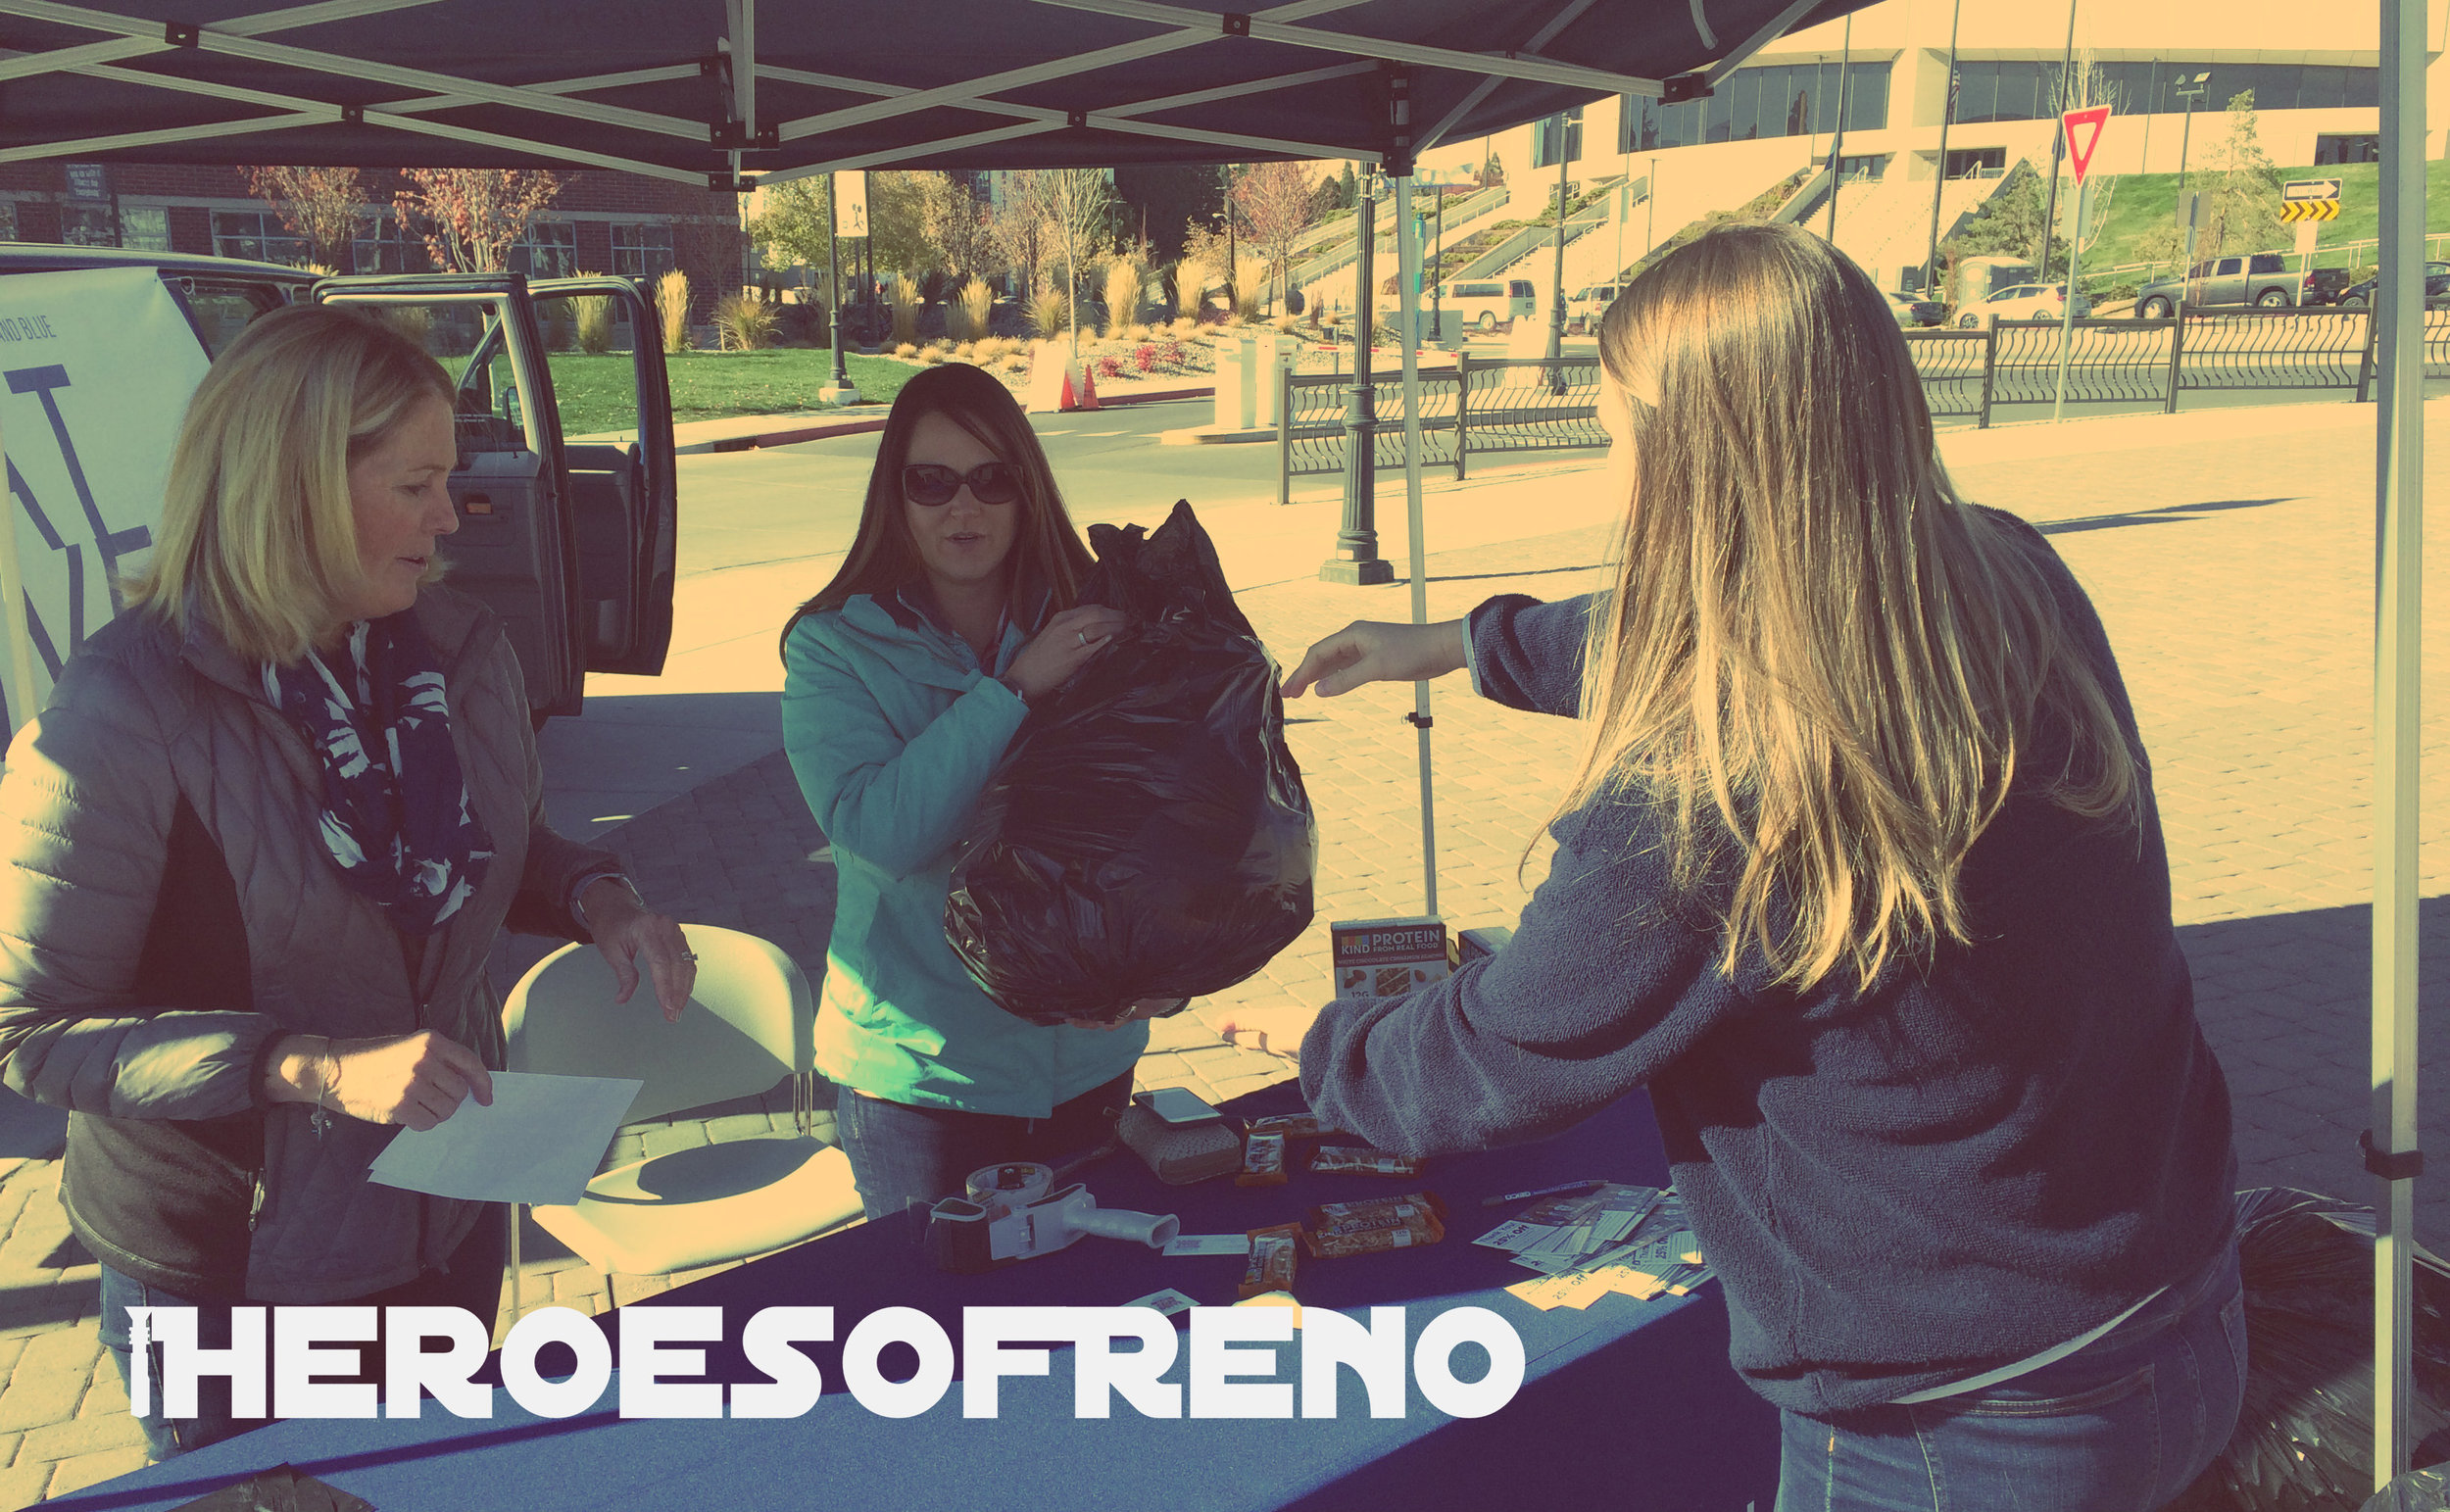 Julie Dunlap (left) and Lauren Sankovich (middle) are members of the Nevada Alumni Association's Women of Silver & Blue helping the Big Reno Coat Drive today on campus at the University of Nevada, Reno.